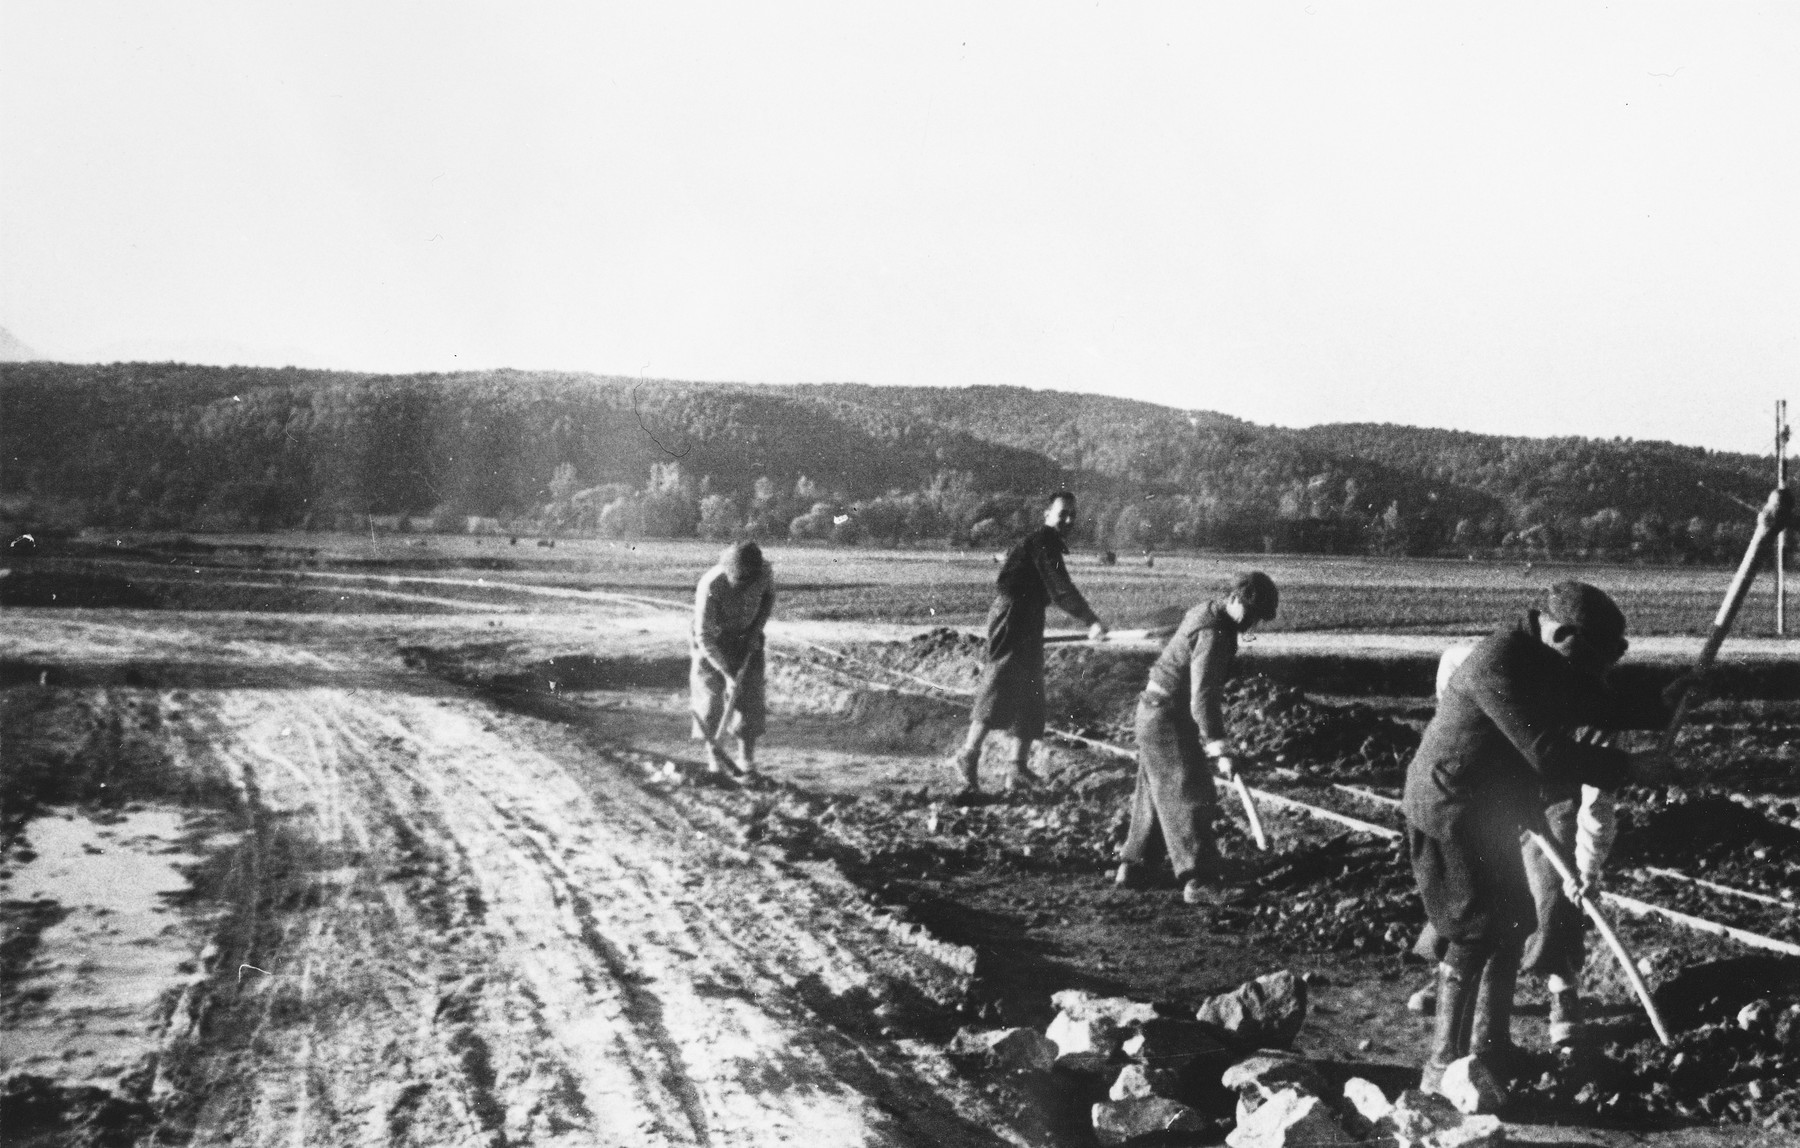 Prisoners holding pick axes and other tools, work along a roadside at a Slovak labor camp.